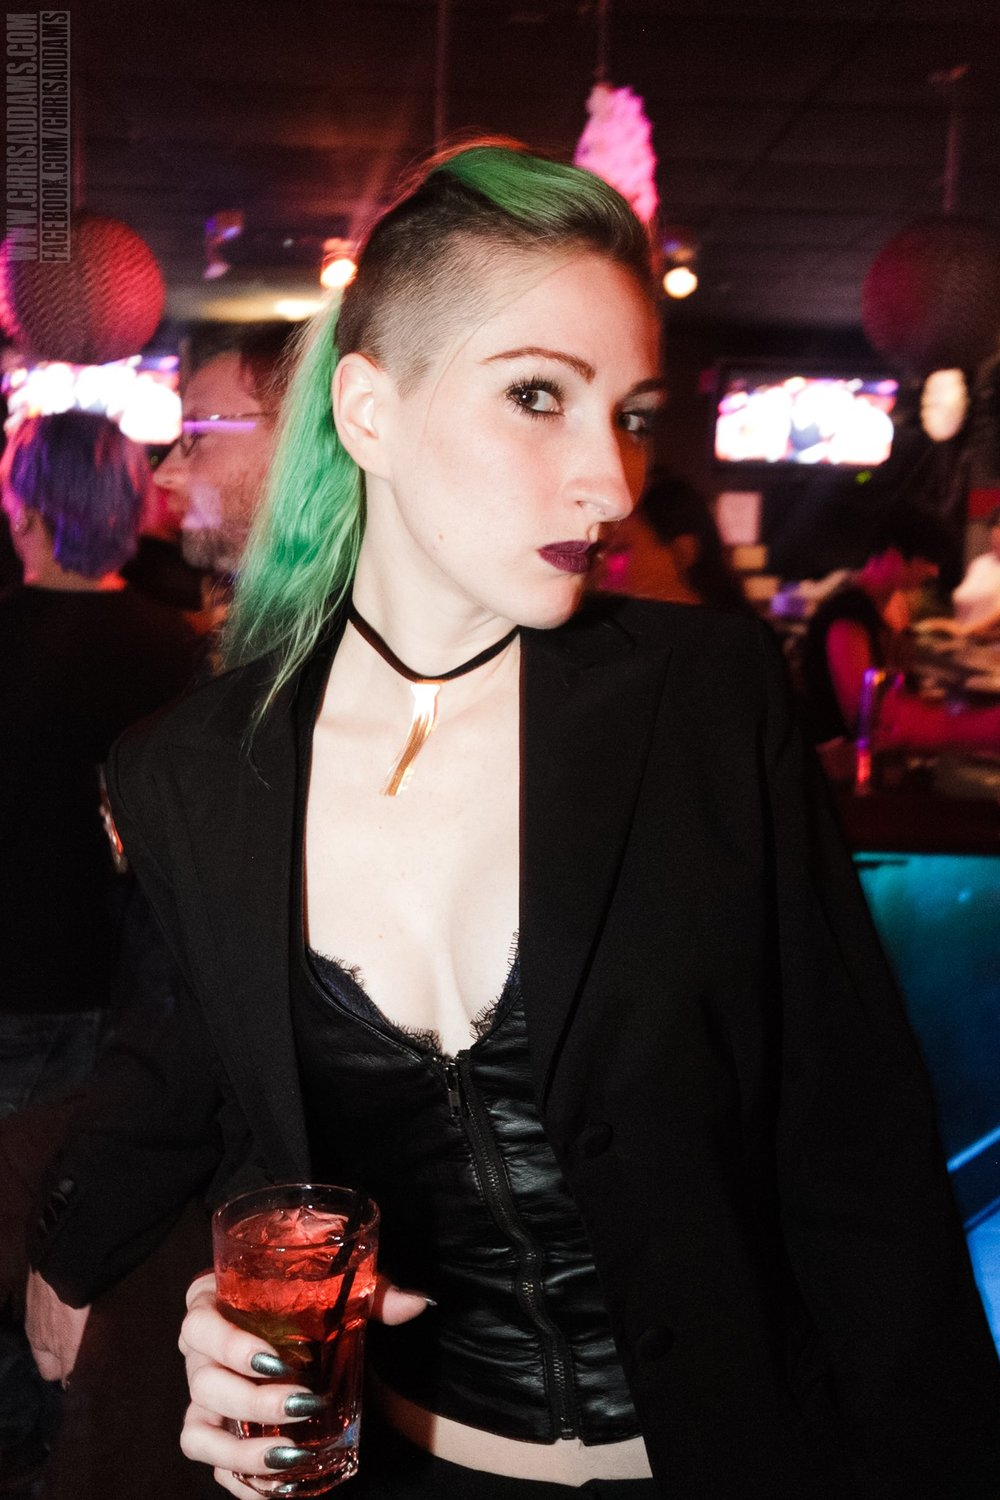 TheHavenClub-Goth-Industrial-Dance-Alternative-Northampton-MA (18).jpg